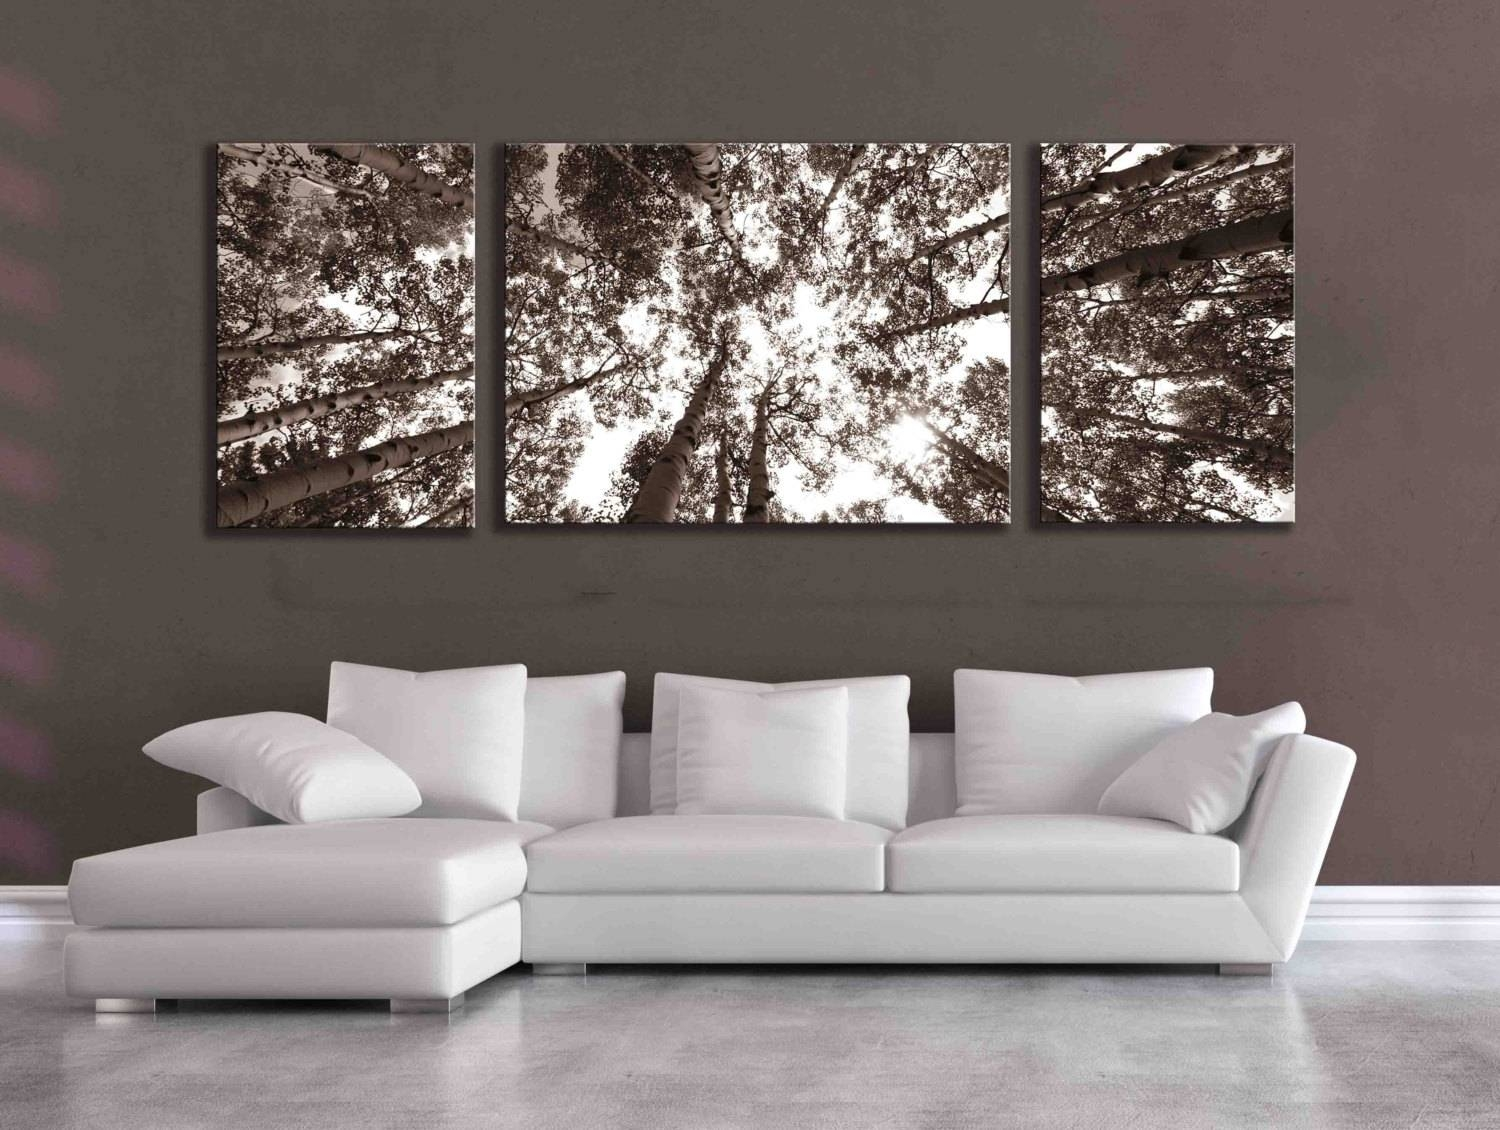 Large Sepia Three Panel Multi Piece Aspen Birch Tree Nature Regarding Most Recently Released Aspen Tree Wall Art (View 8 of 20)